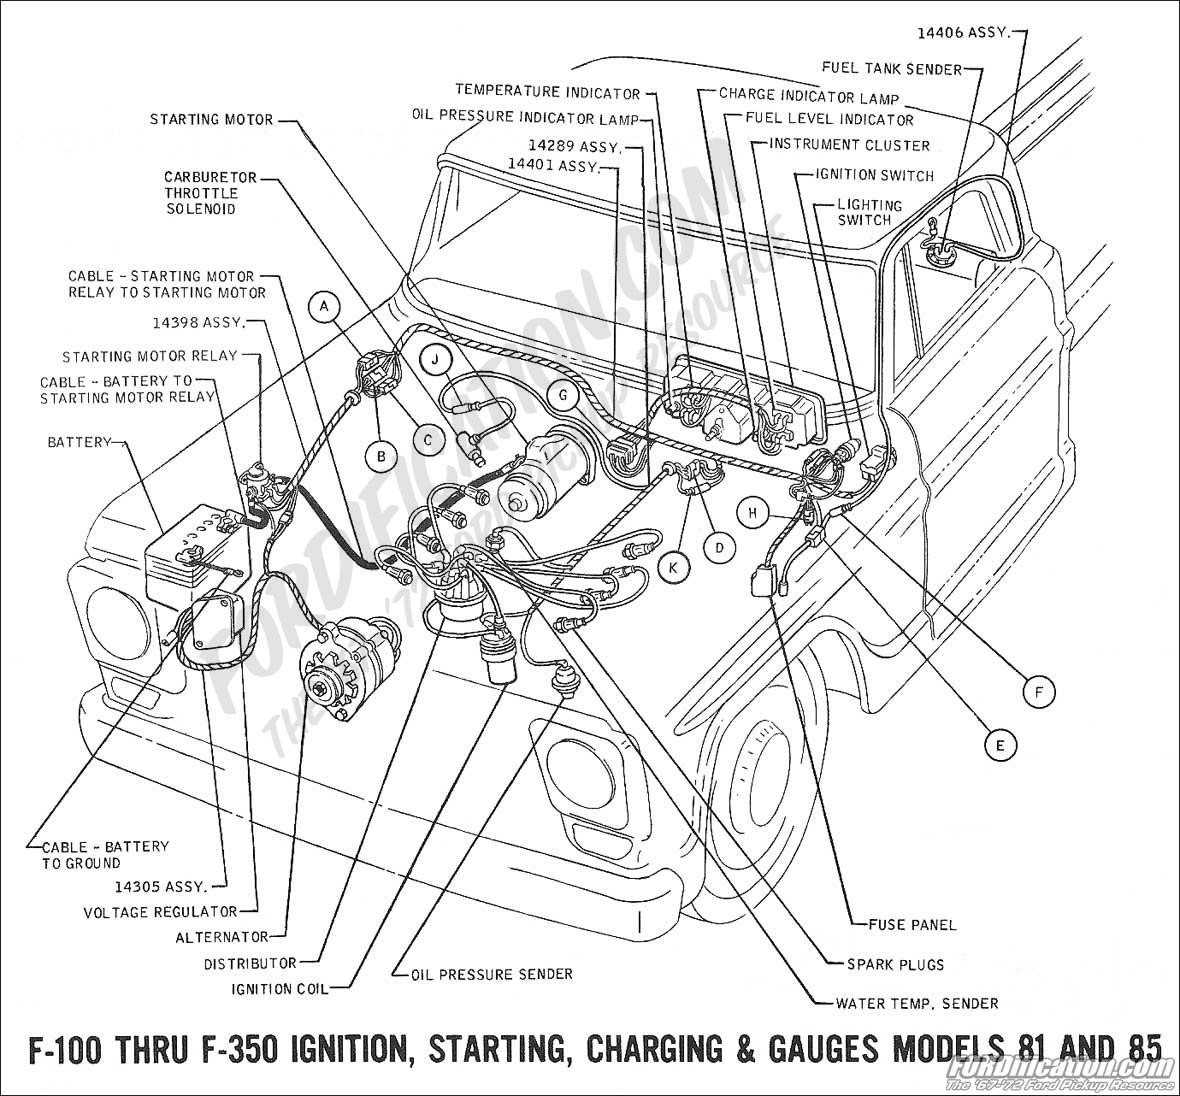 wiring 1969charging 69 f100 wiring diagram 1973 ford f100 wiring diagram \u2022 wiring 1966 ford truck wiring diagram at crackthecode.co